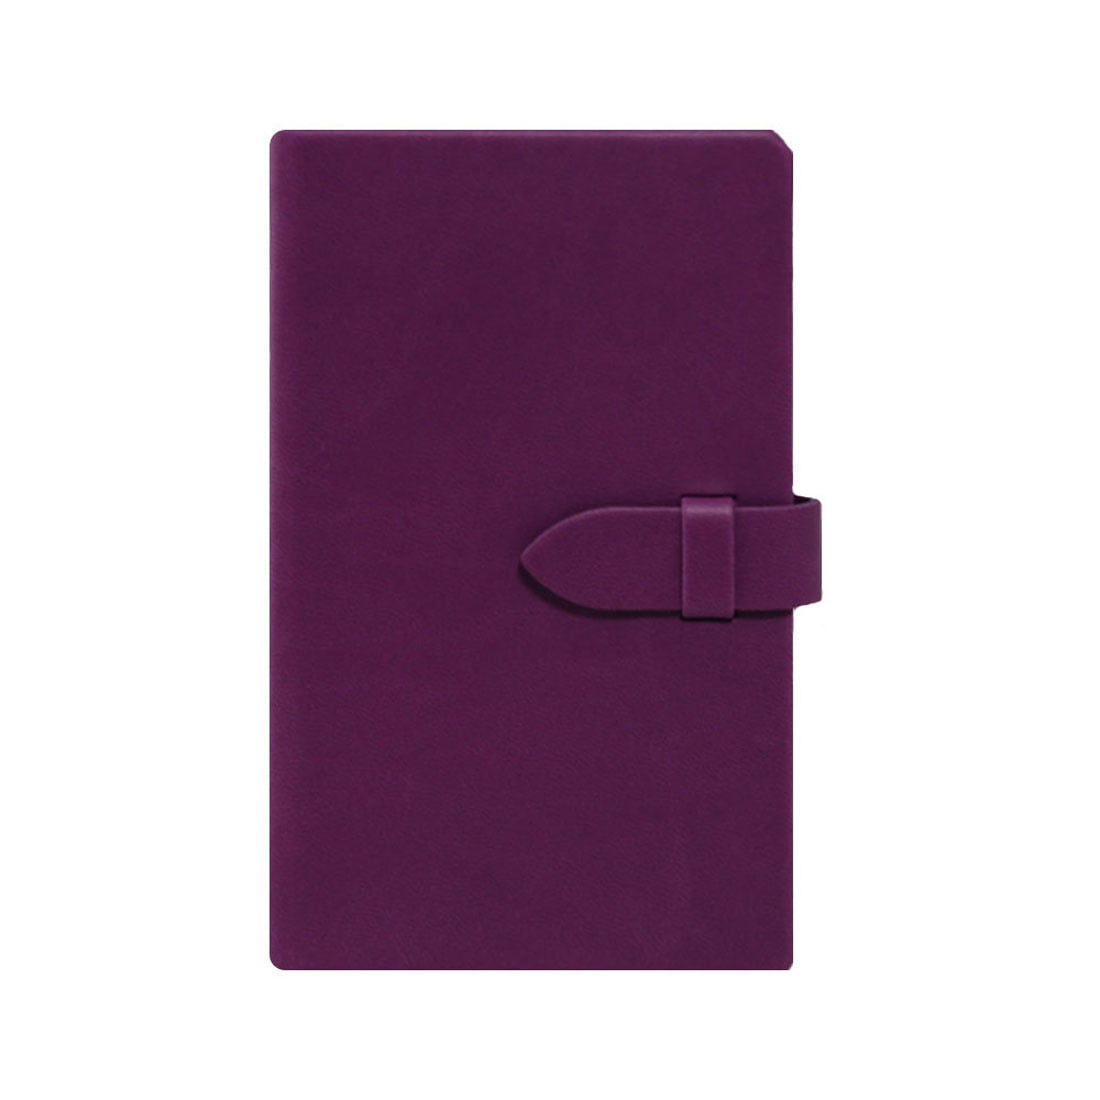 Pocket notebook with rounded corners and clasp closure.